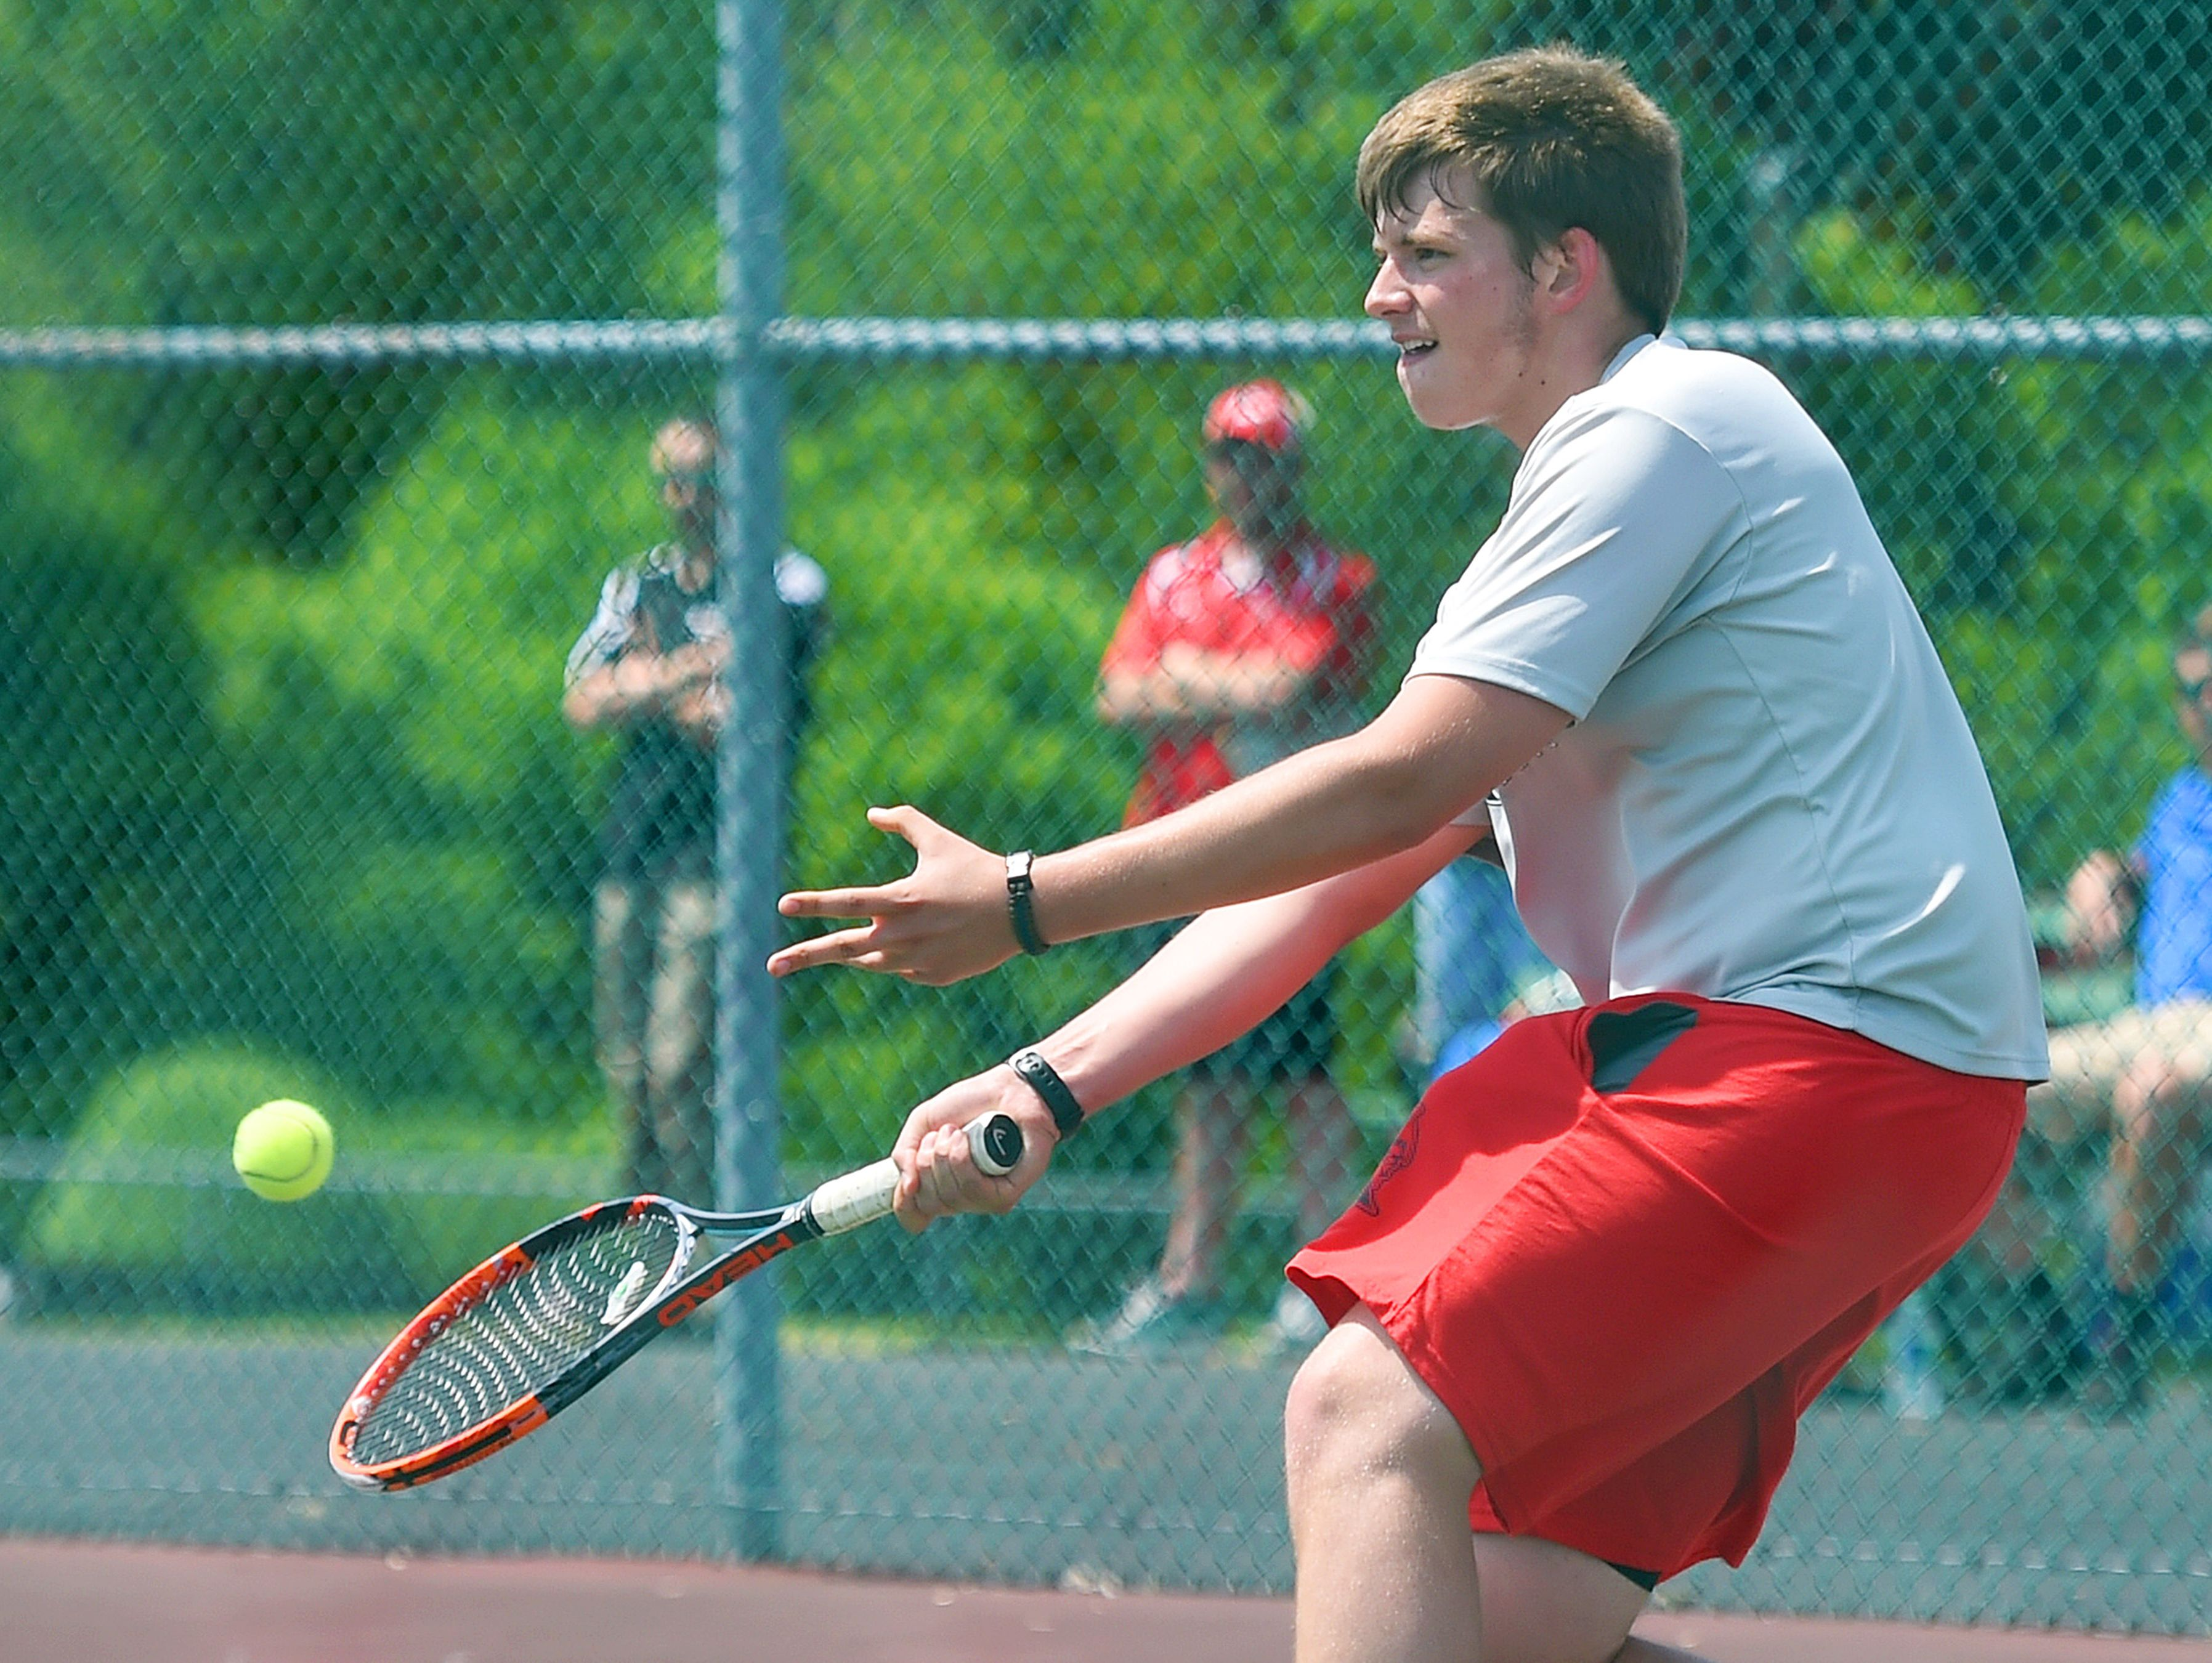 Riverheads' Eric Alanko slips forward to make the return in a match against Robert E. Lee's Mark Silwoski during the Conference 36 tennis tournament in Fishersville on Thursday, May 13, 2016.